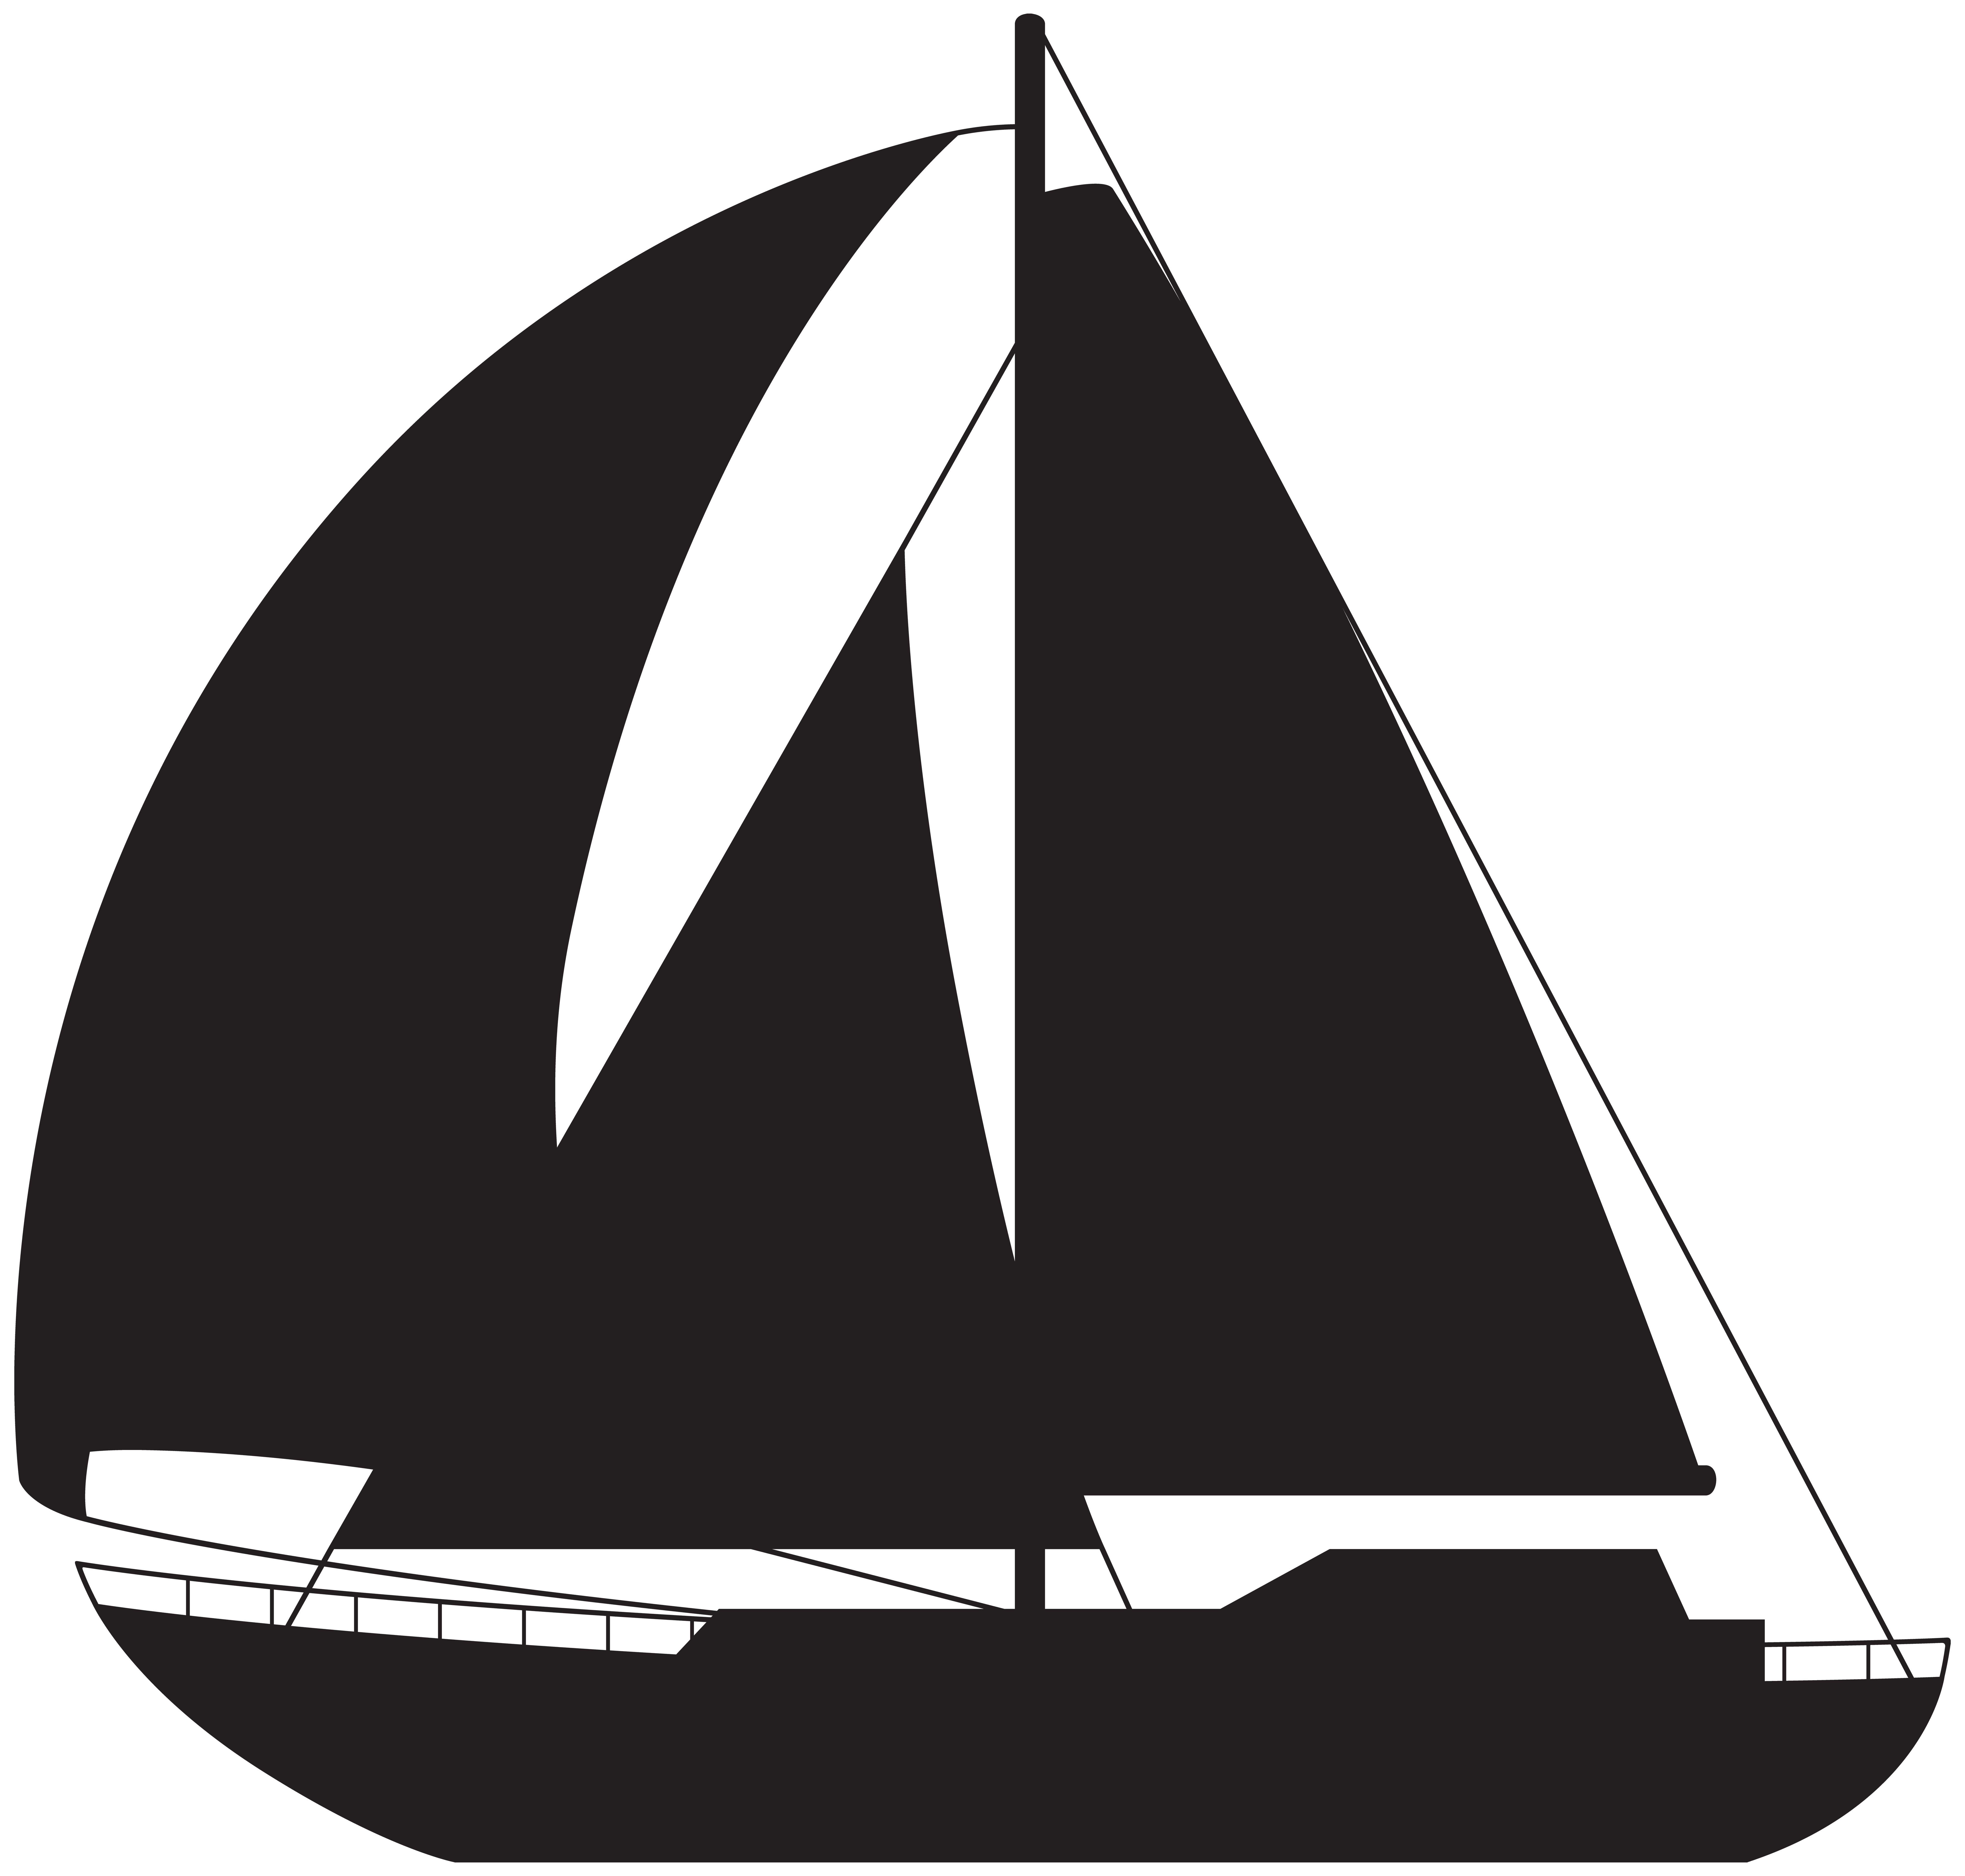 Sailboat Silhouette PNG Clip Art Image.